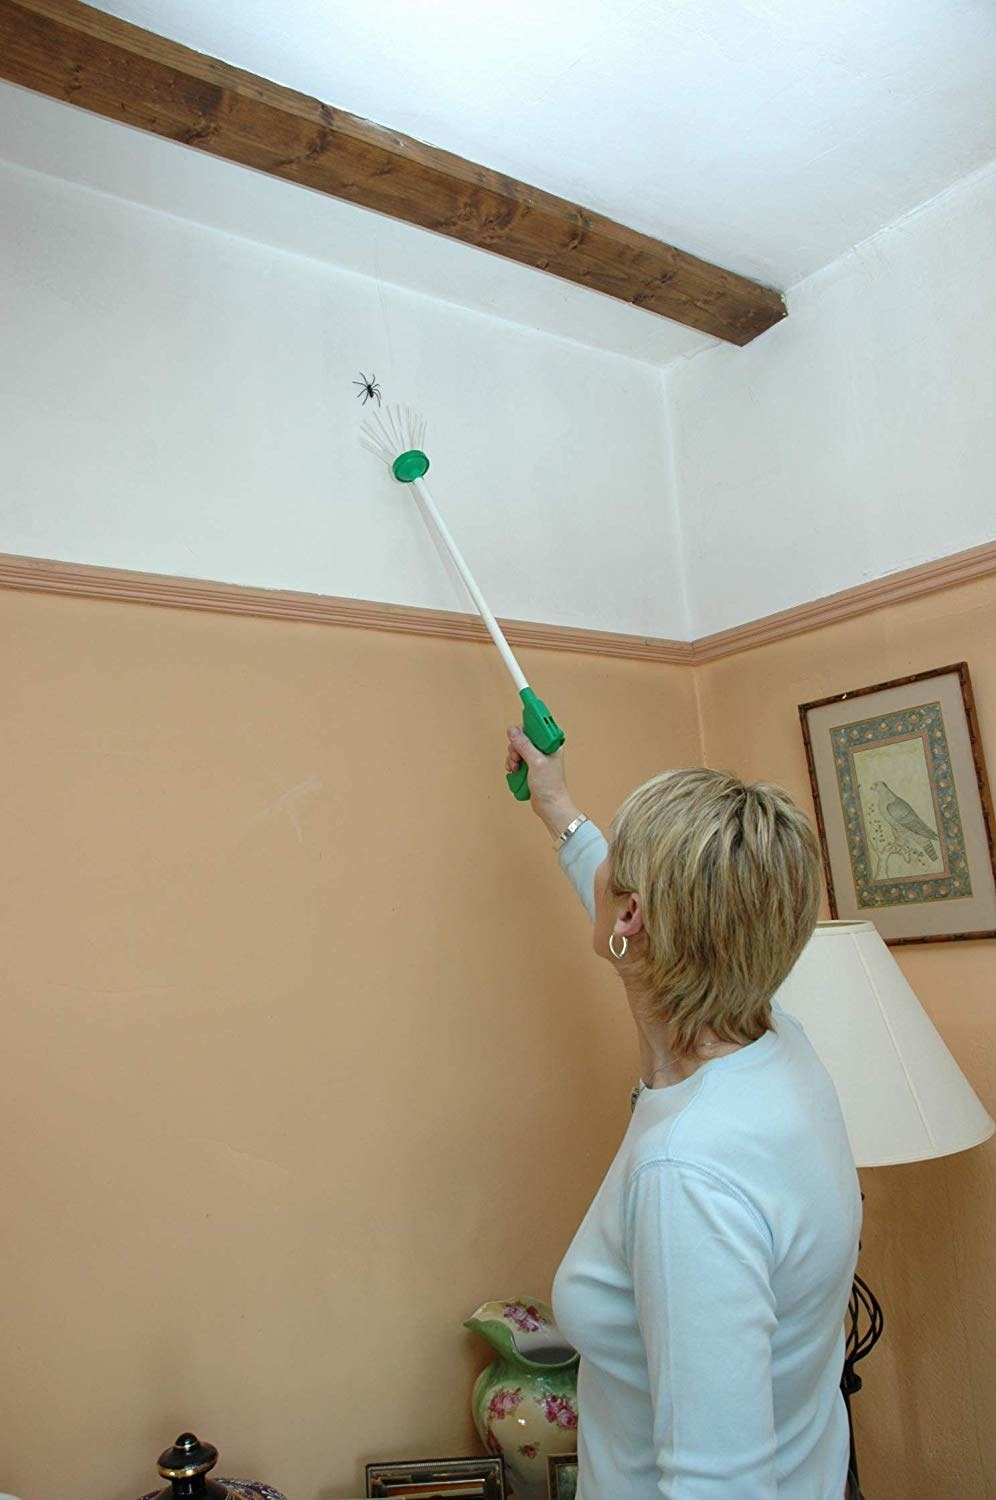 A model using the long tool with a trigger on one end and soft bristles on the other to catch a spider  close to the ceiling